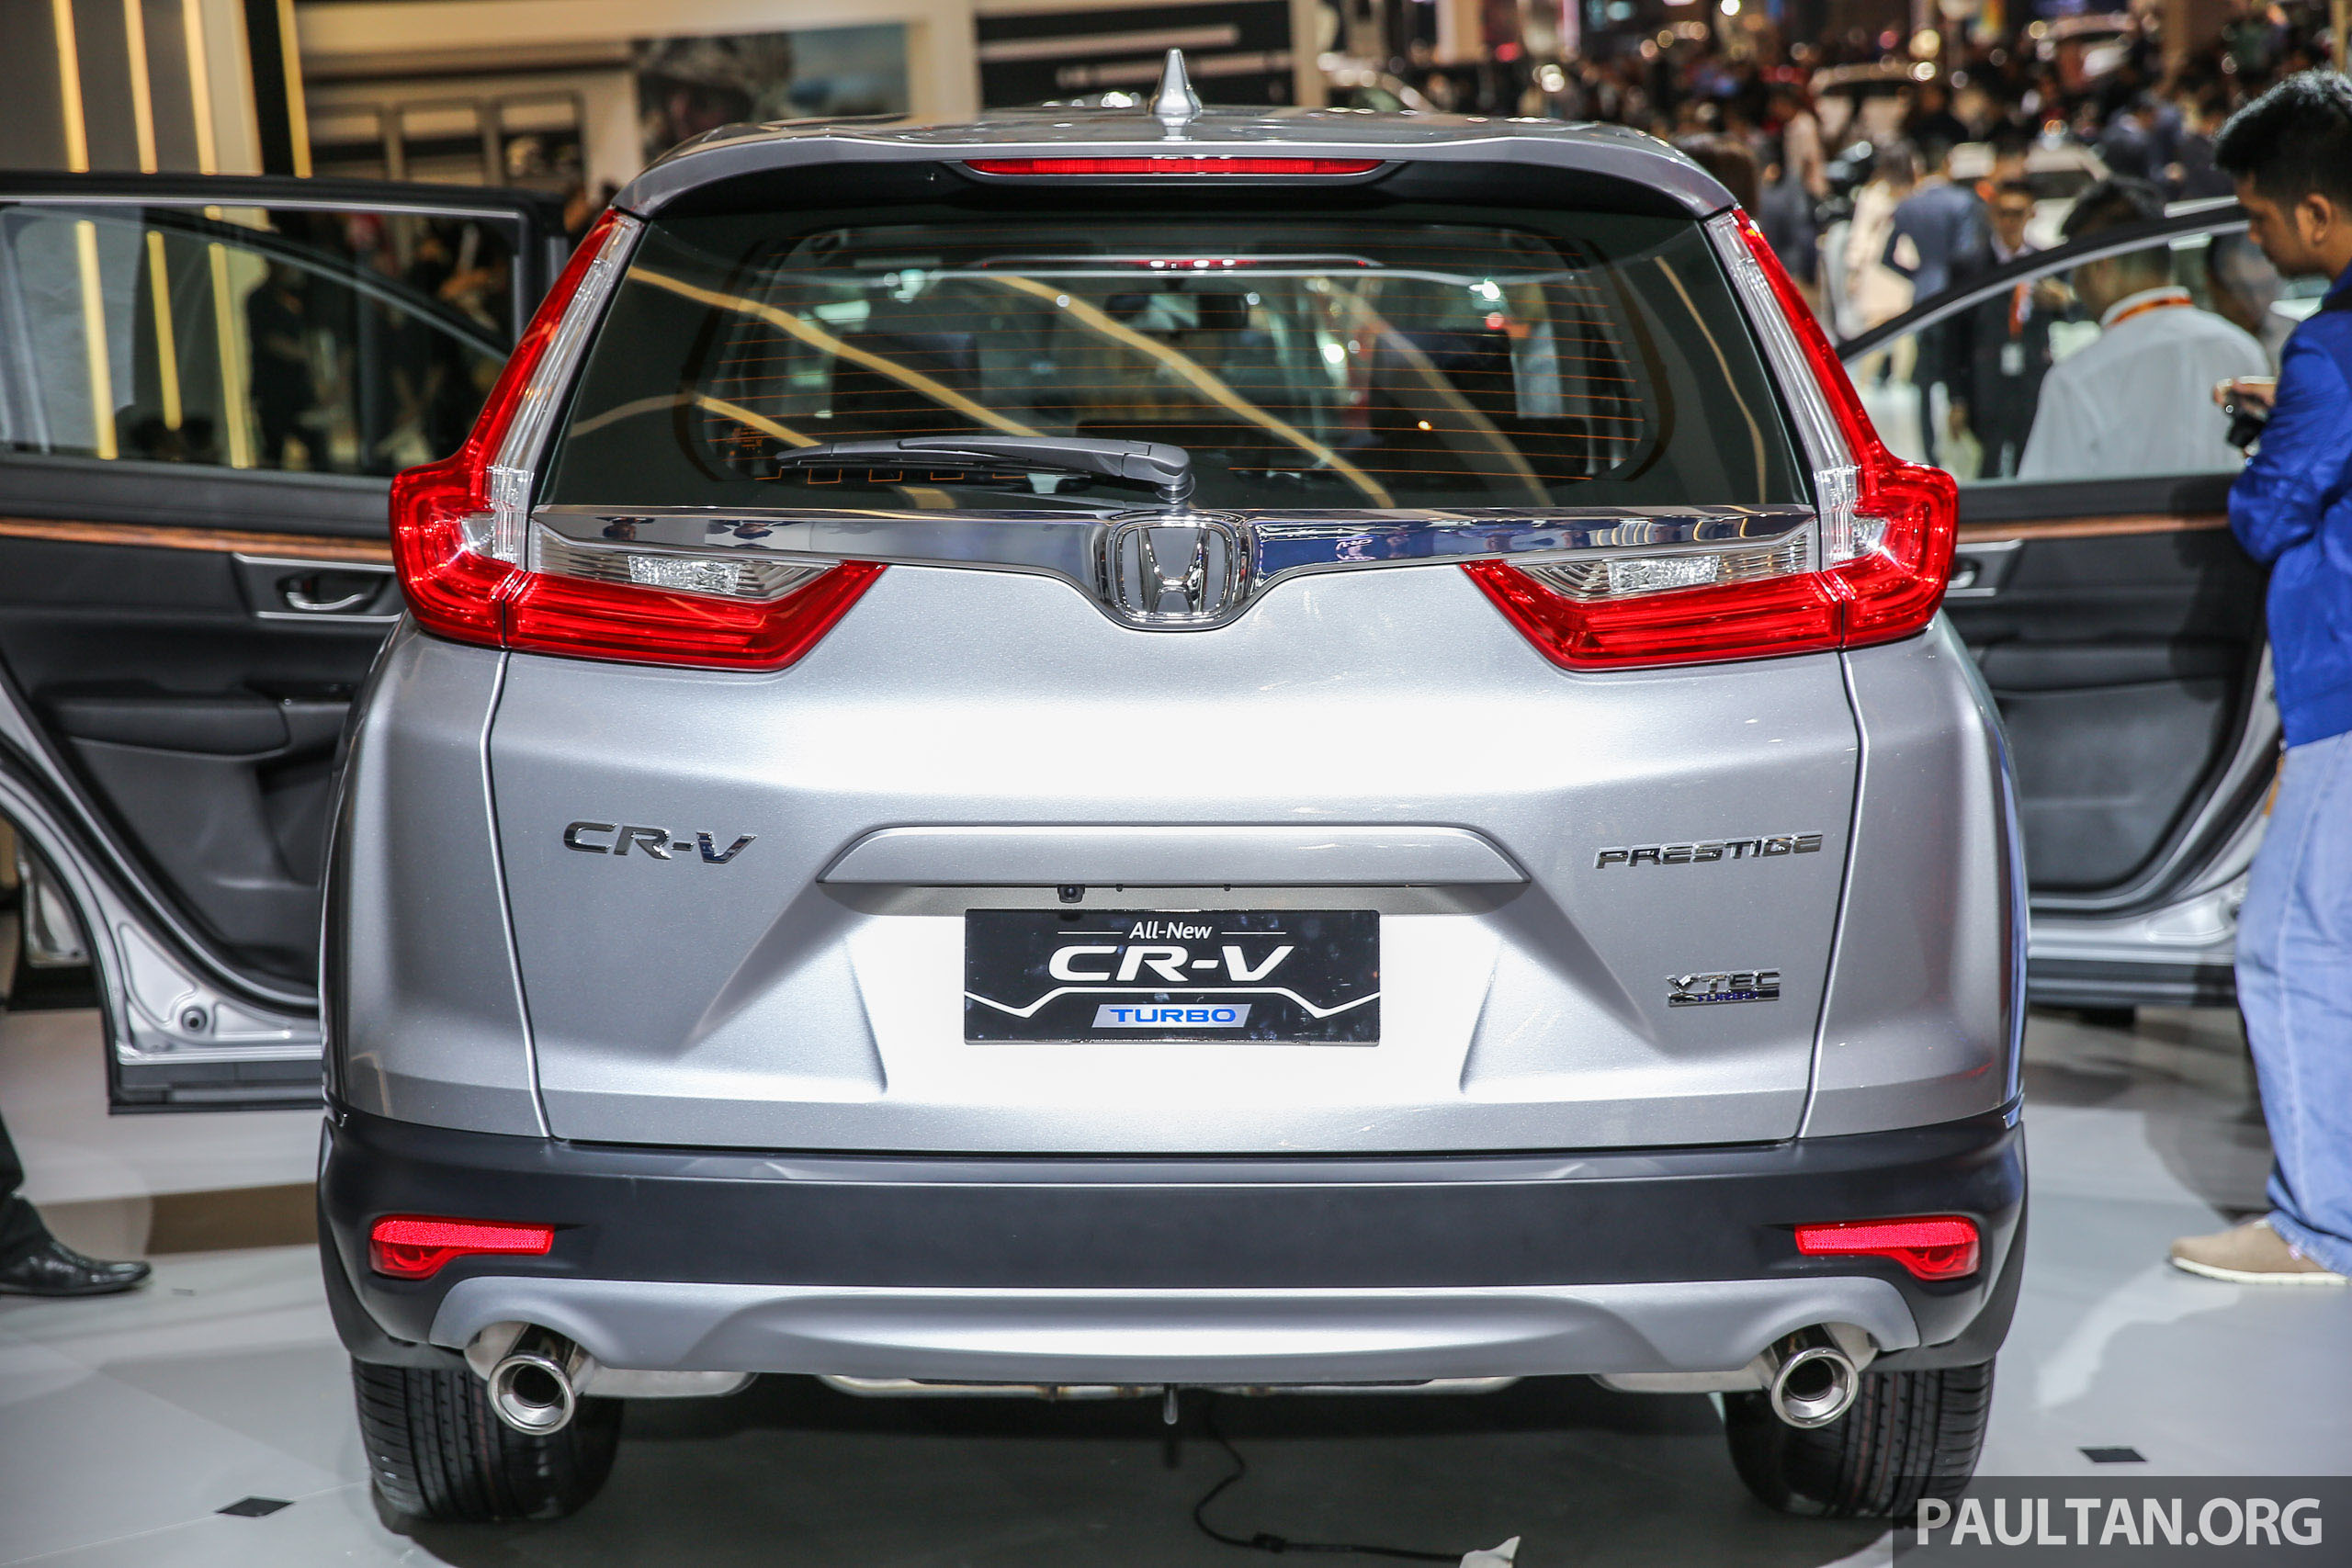 iims 2017 new honda cr v launched in indonesia seven seat 1 5l vtec turbo five seat 2 0l na. Black Bedroom Furniture Sets. Home Design Ideas